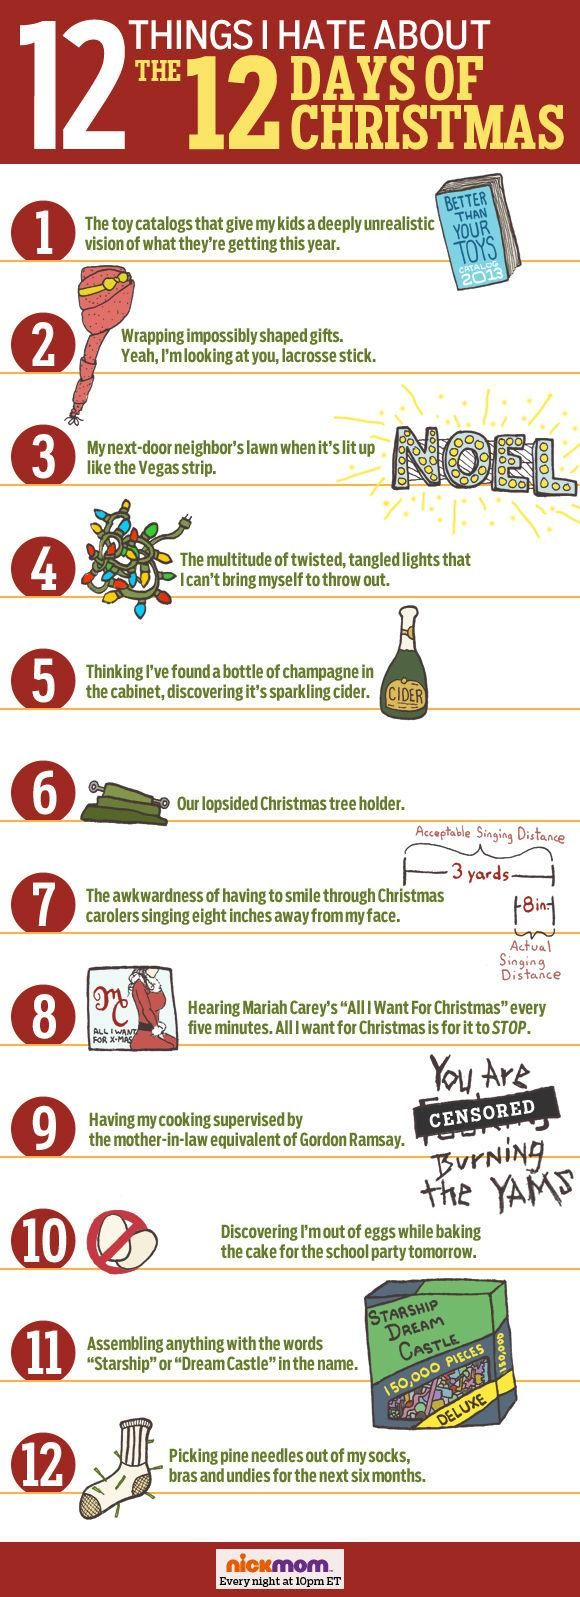 12 things we hate about the 12 days of Christmas | Happy Holidays ...